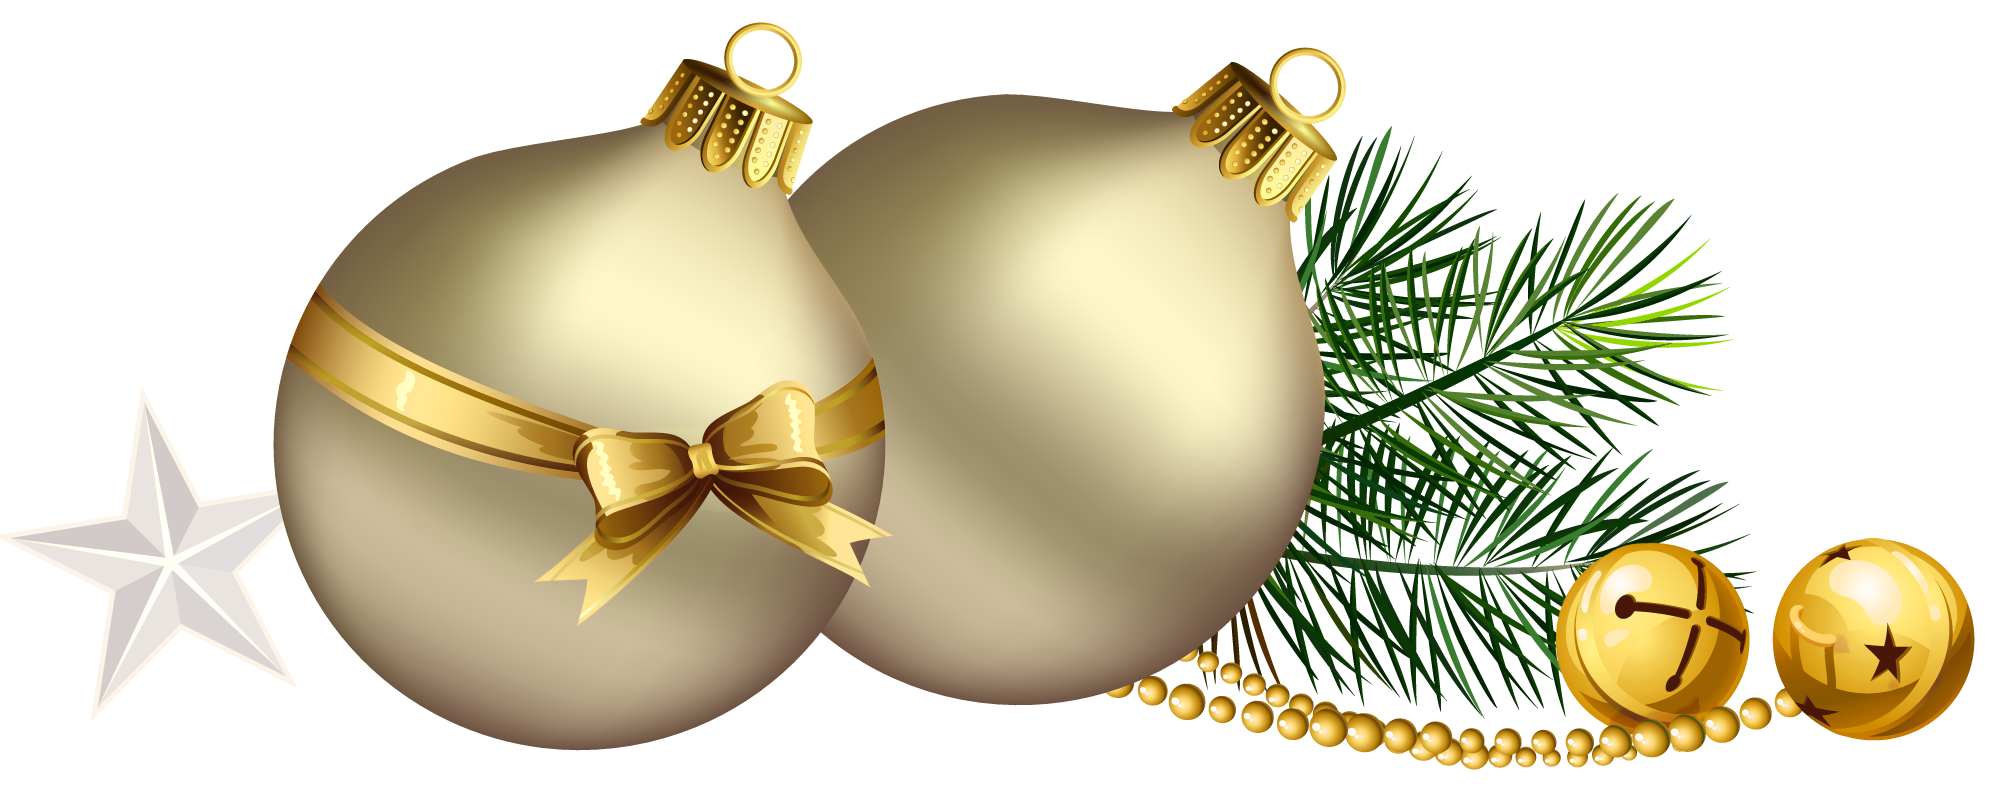 Christmas star clipart graphics graphic free library Christmas Balls with Pine Branch and Star Clipart | Gallery ... graphic free library